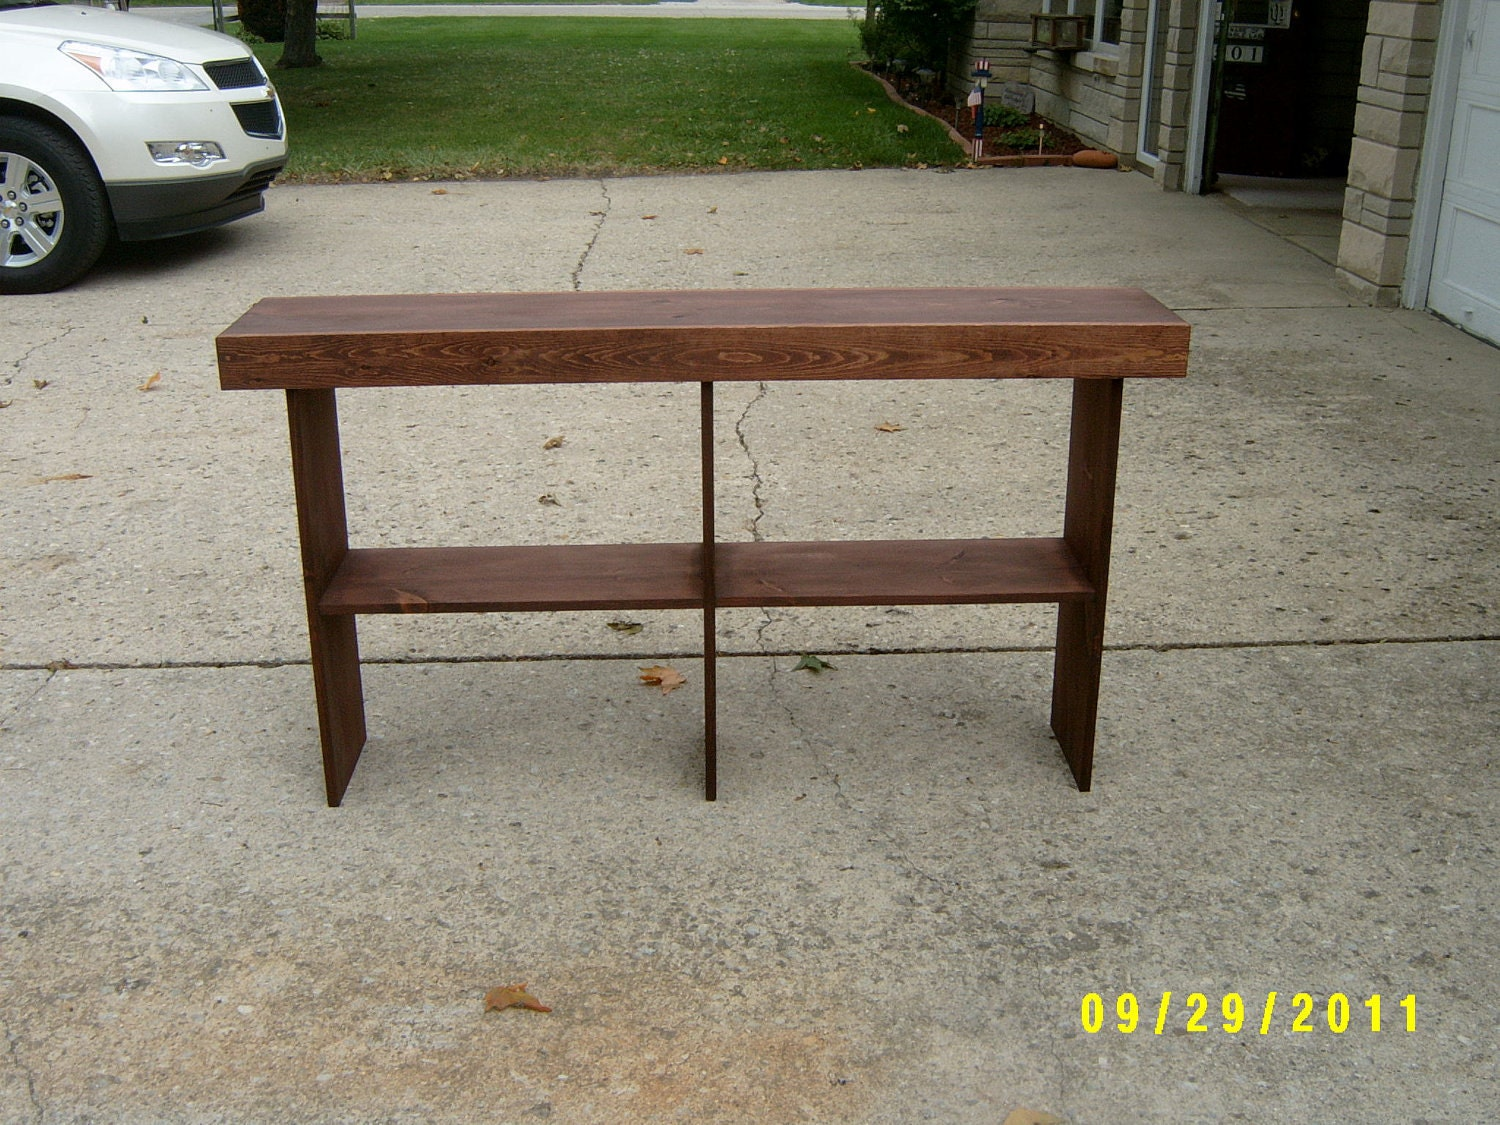 Popular items for wooden bench on Etsy